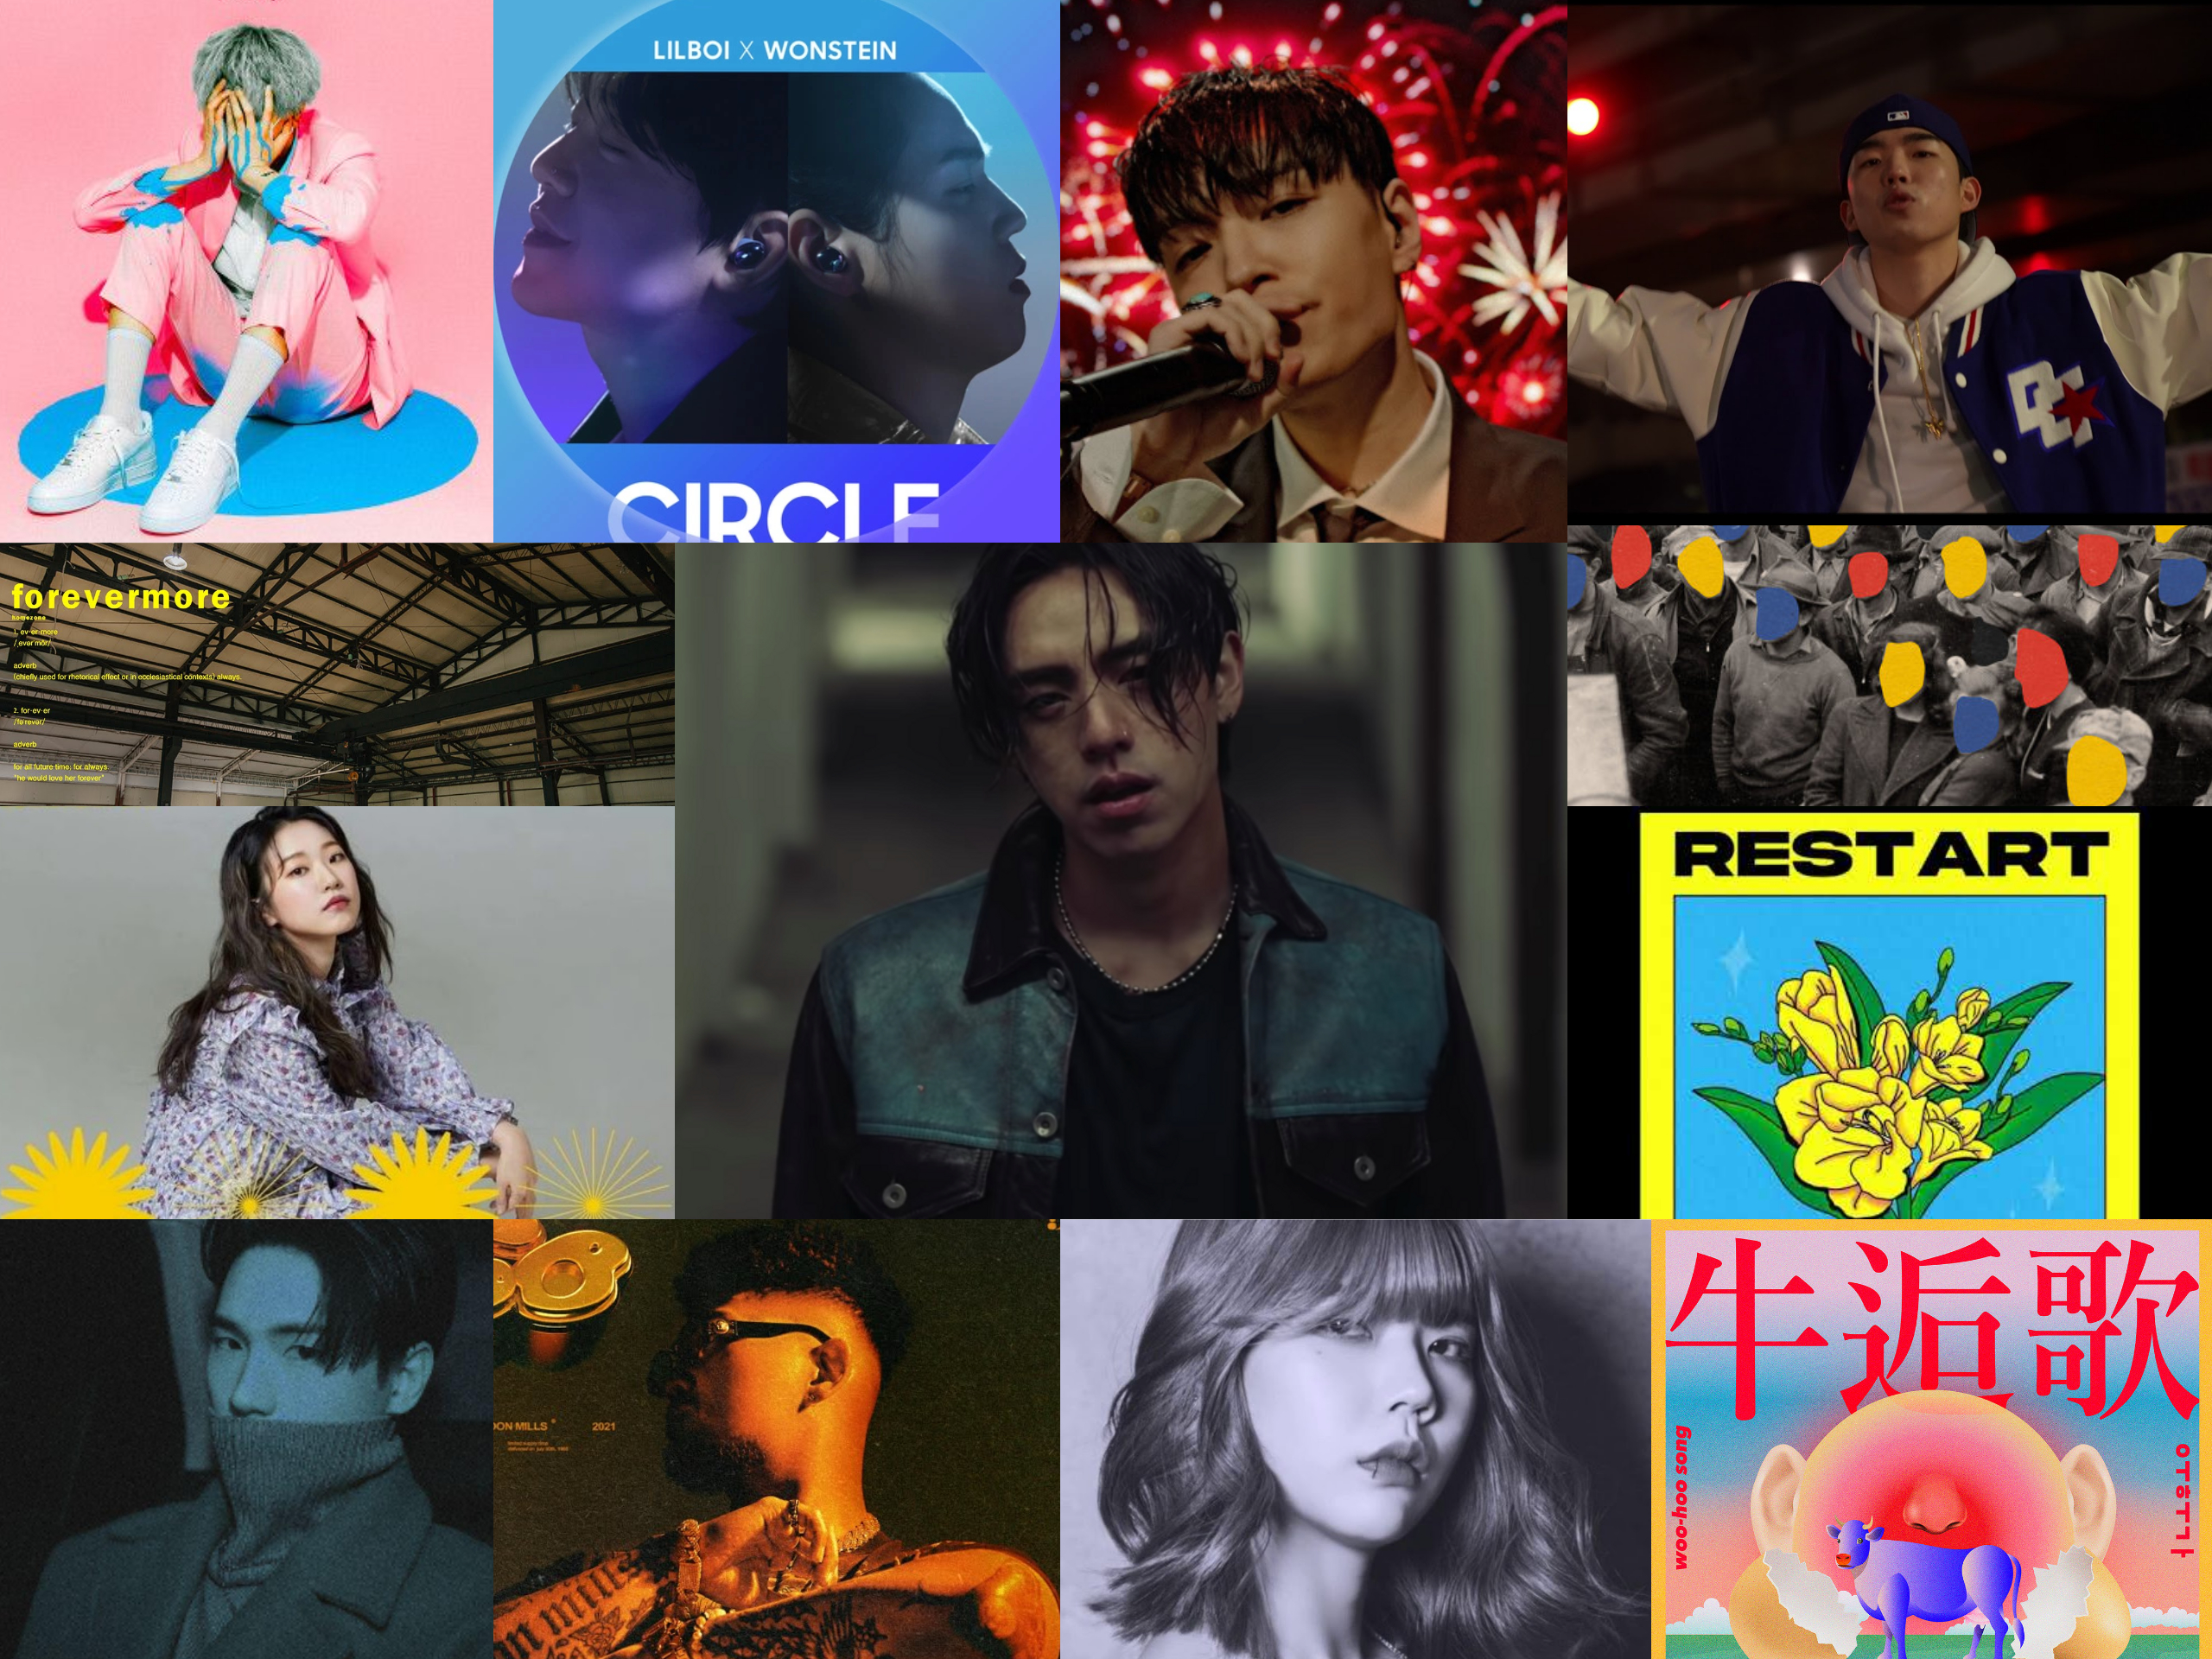 WEEKLY KOREAN HIPHOP-R&B + INDIE REVIEW & STREAMING GUIDE (9th March – 15th March)